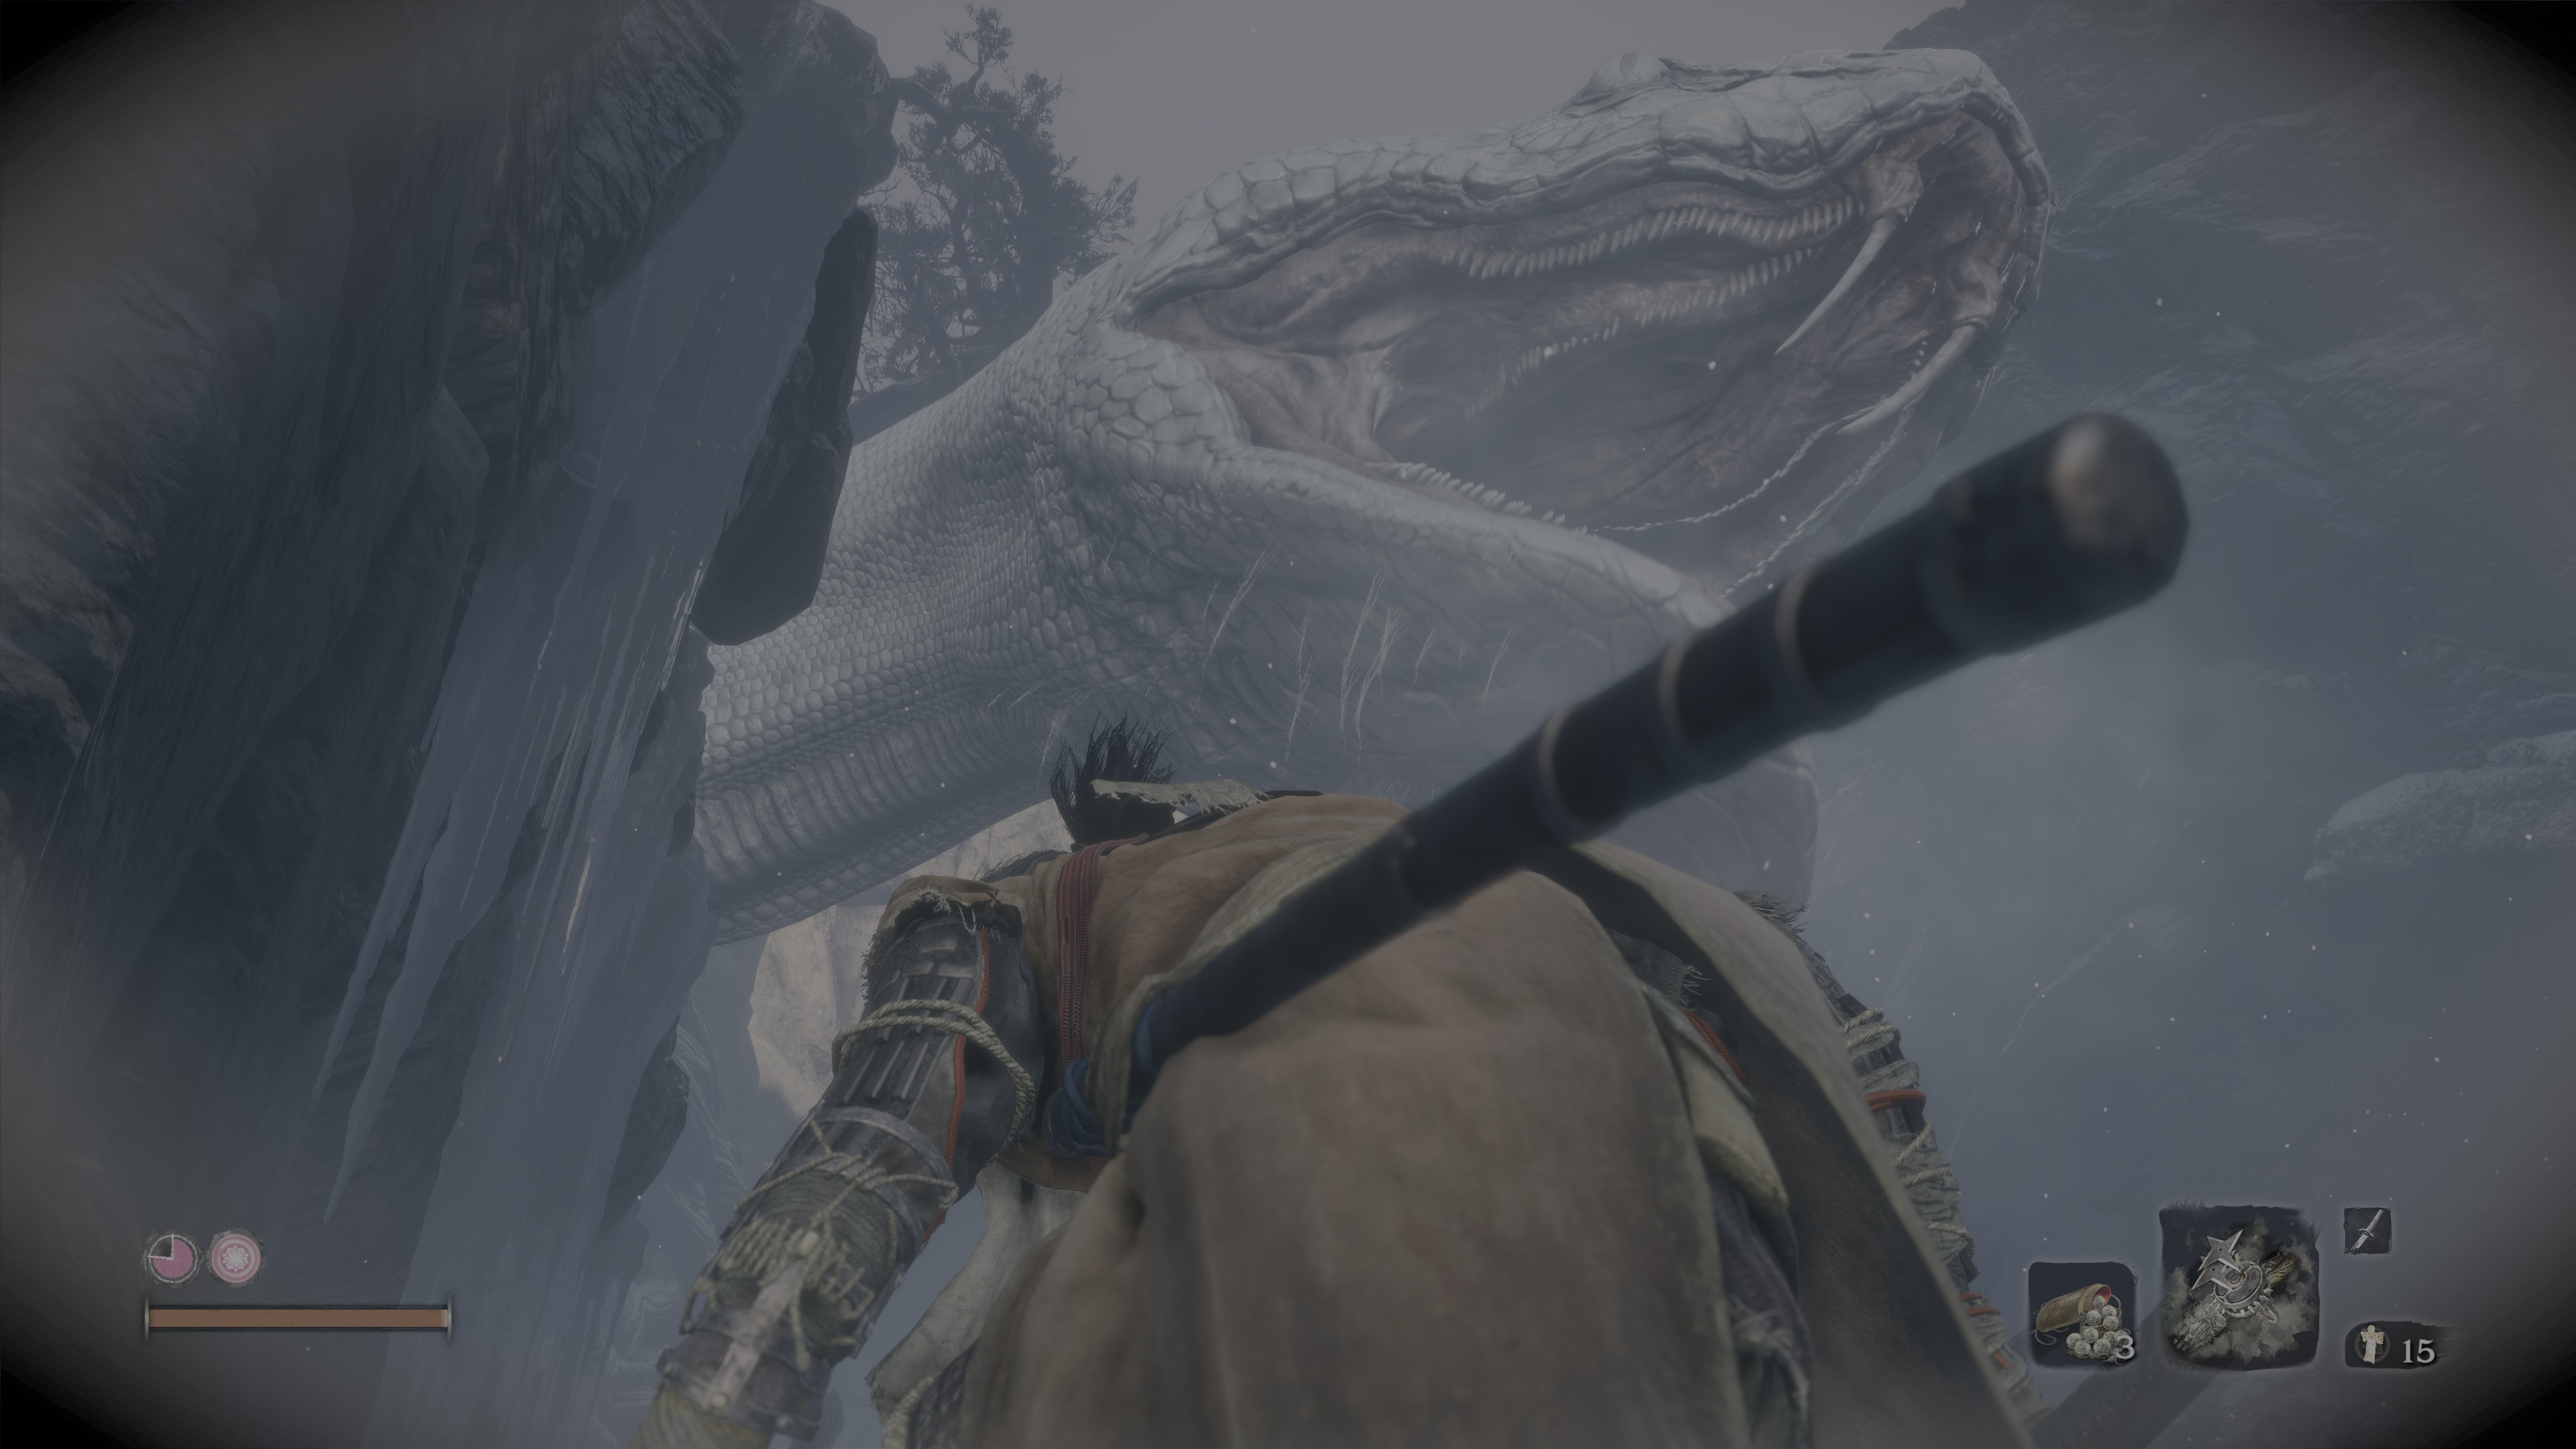 Sekiro: Shadows Die Twice [PC PS4 XONE] 8A3FE1CB422CF83205B73F419EC4D34EB328457B